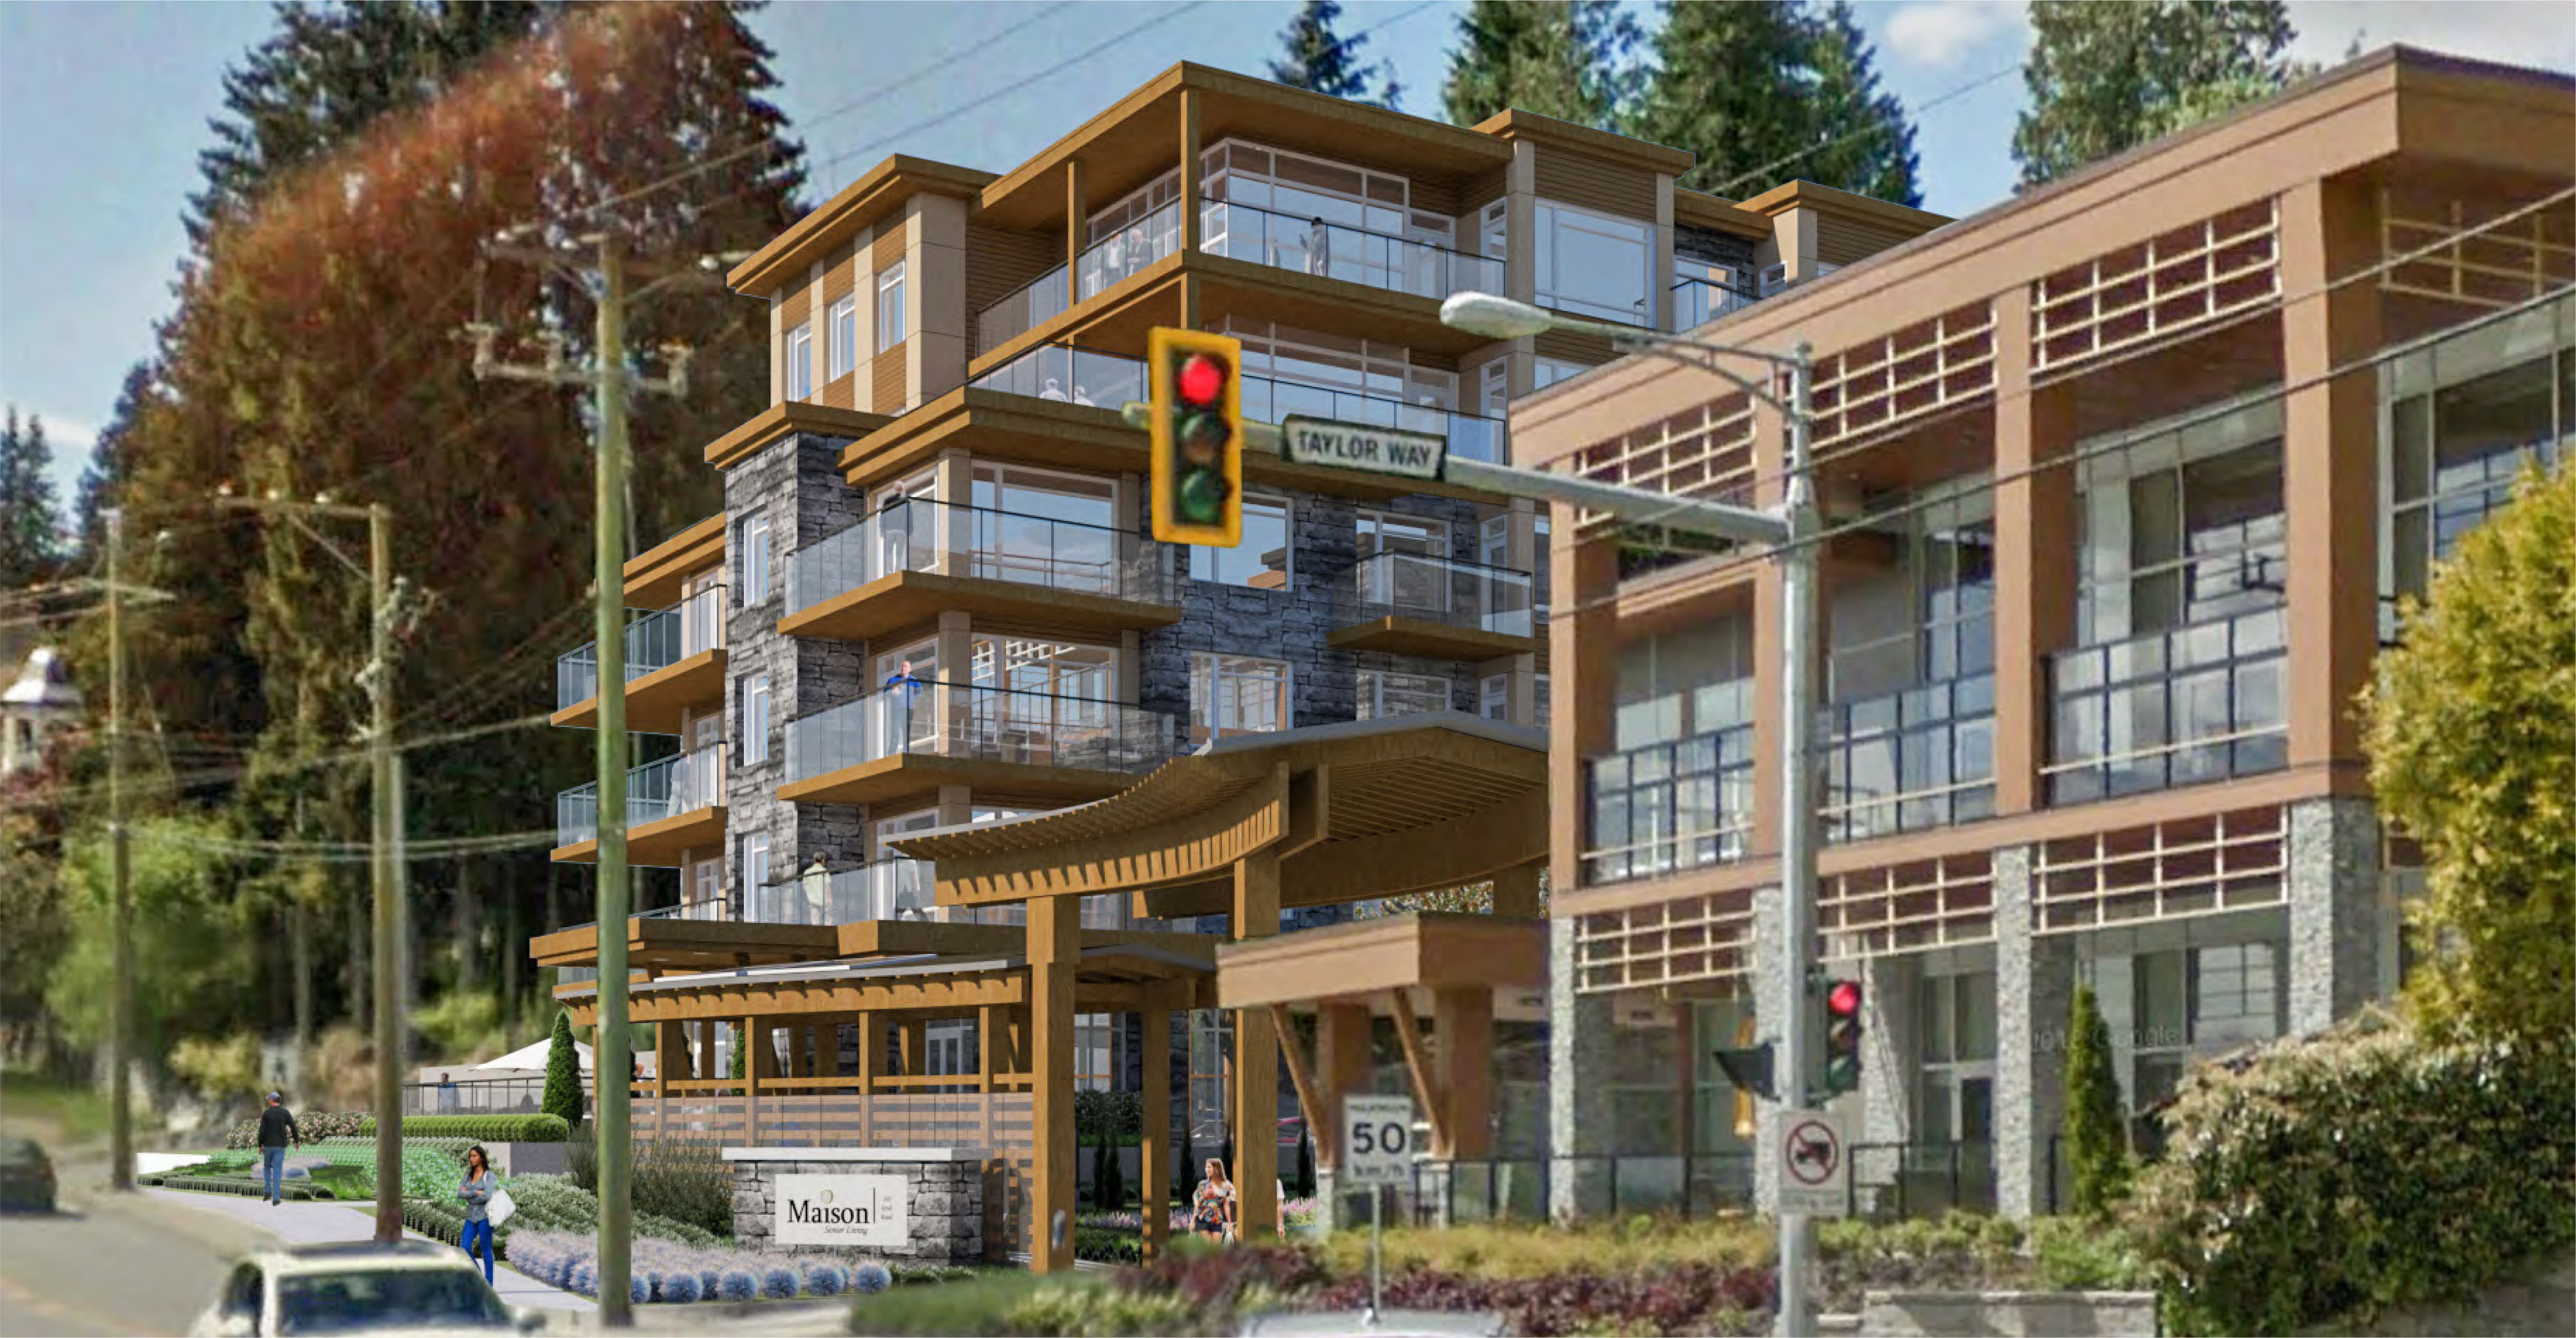 Exterior - 727 Keith Rd, West Vancouver, BC V7T 1M2, Canada!